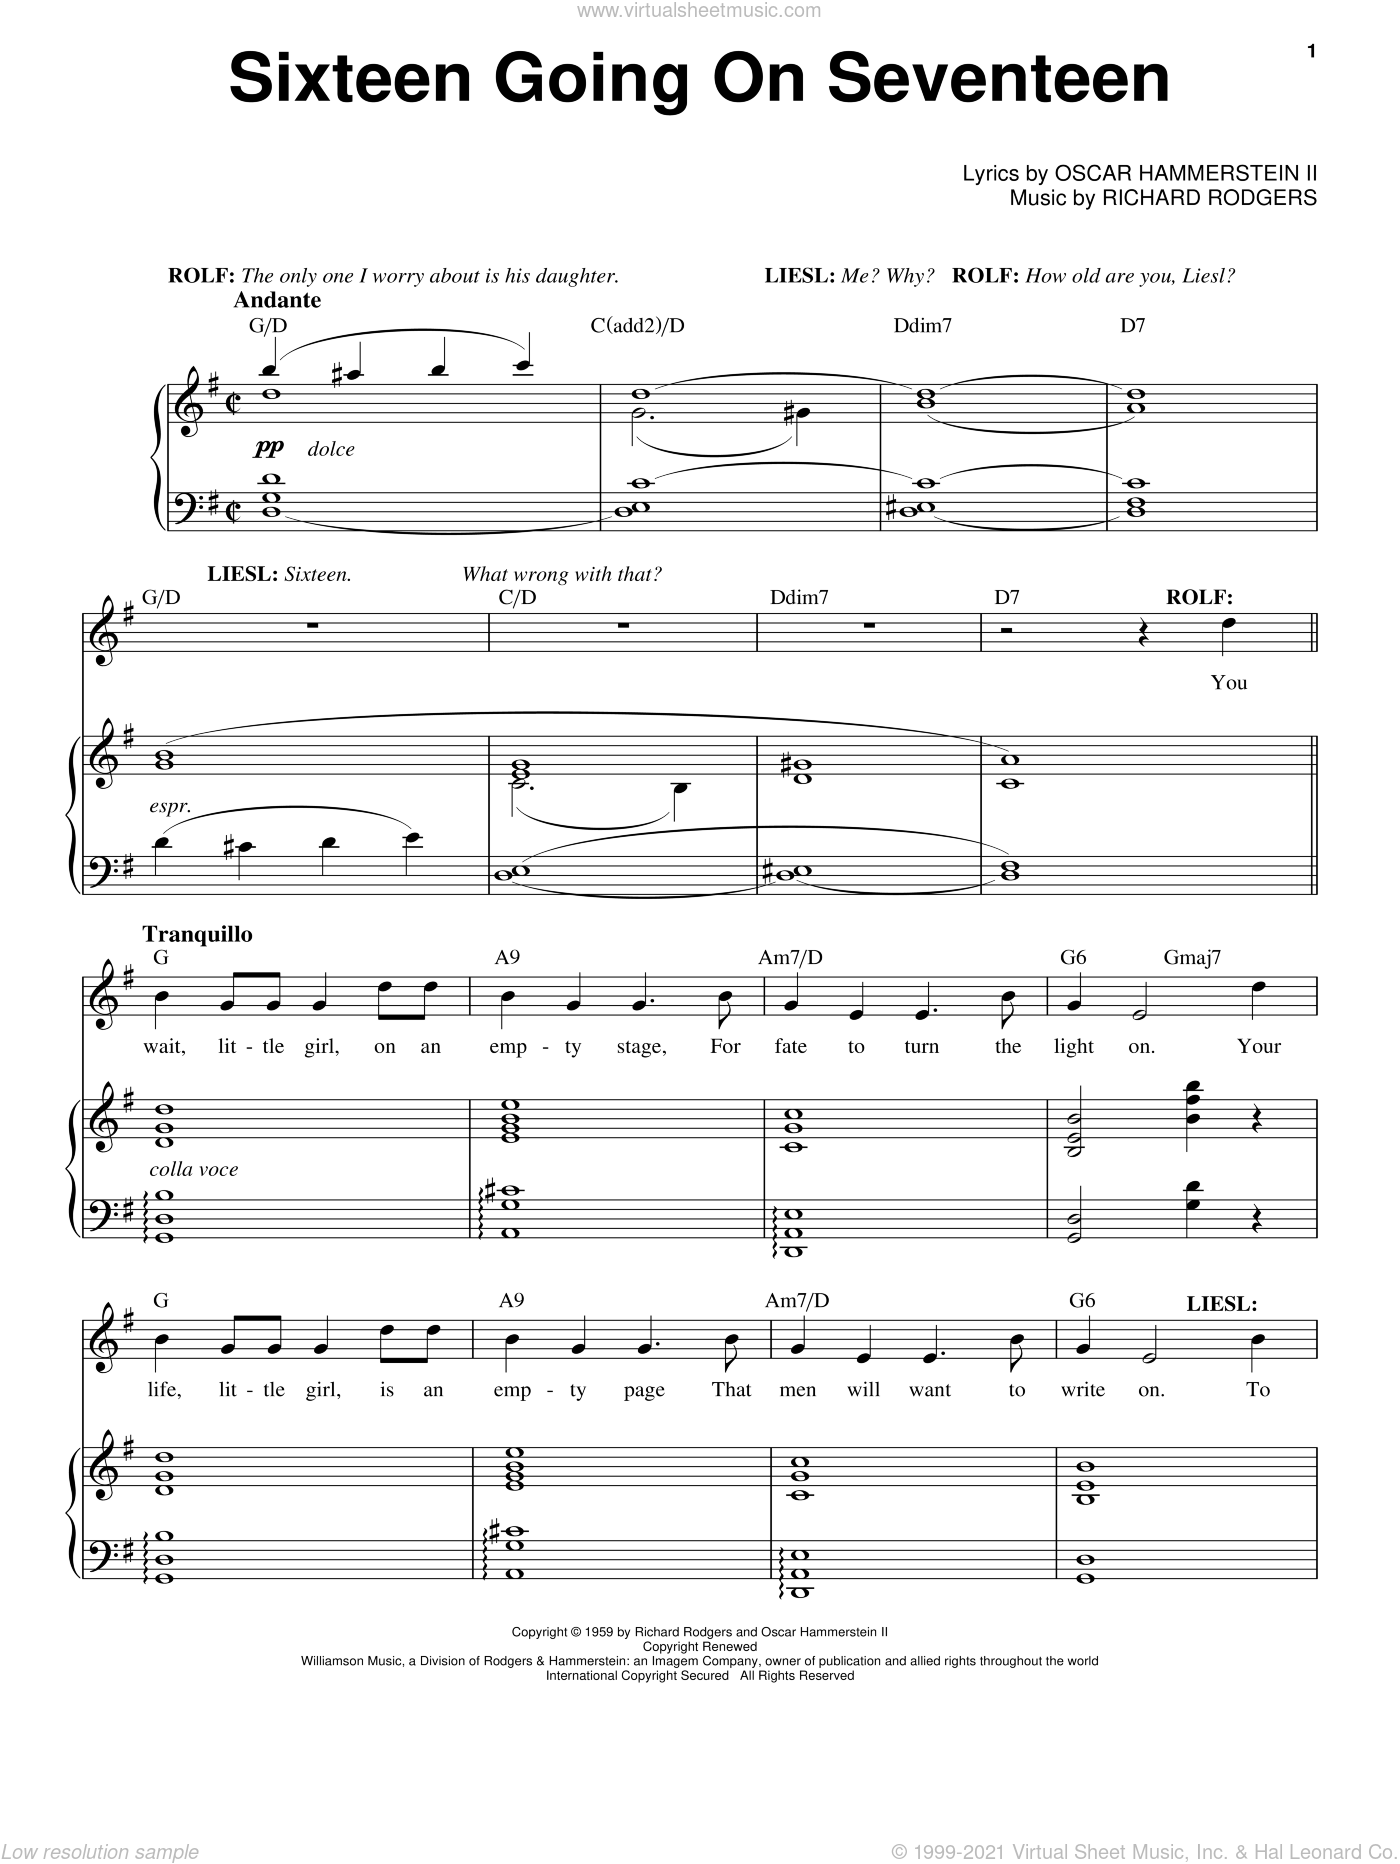 Sixteen Going On Seventeen sheet music for voice and piano by Rodgers & Hammerstein, Oscar II Hammerstein and Richard Rodgers, intermediate skill level